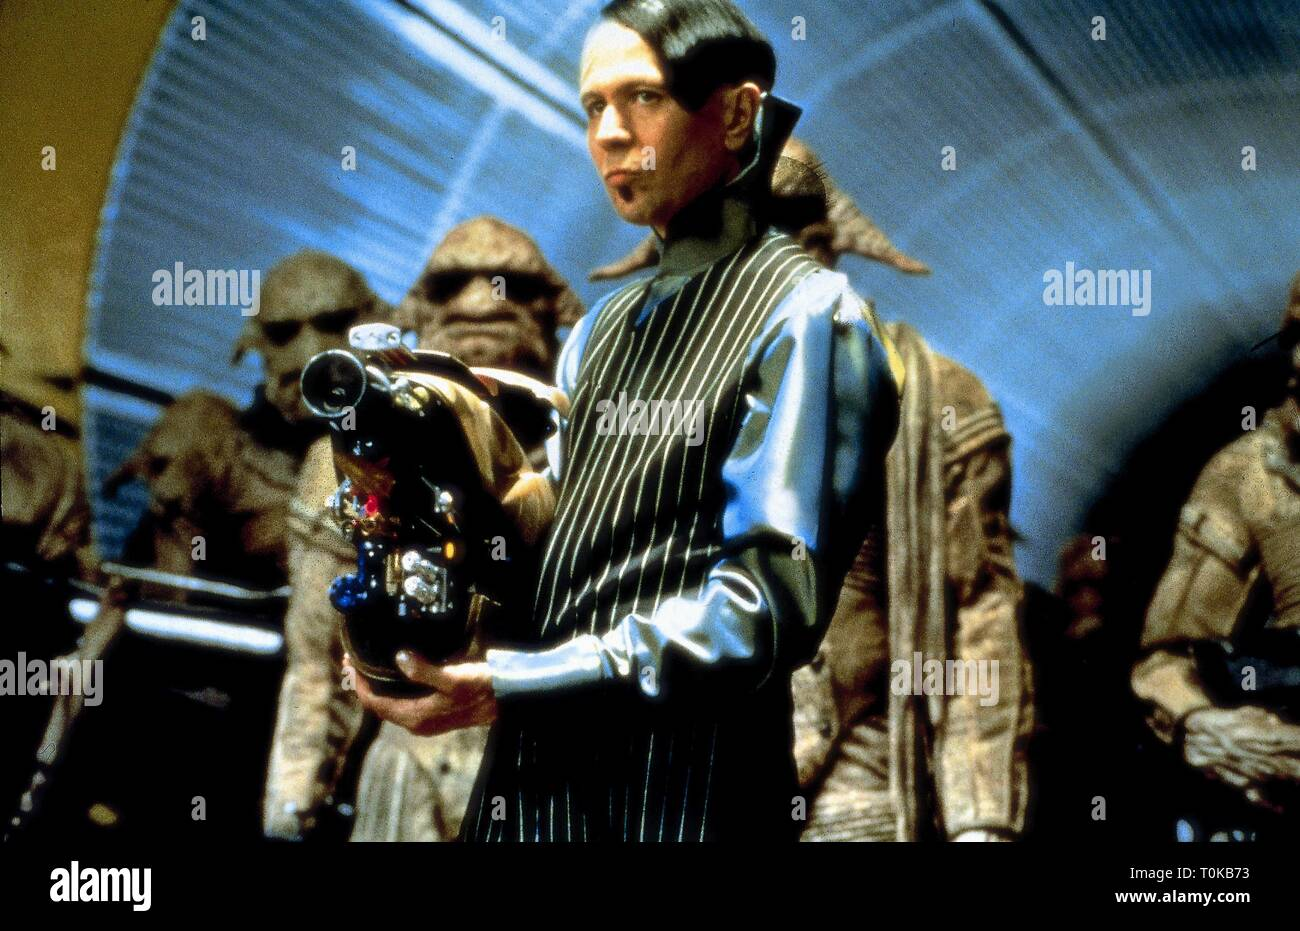 GARY OLDMAN, THE FIFTH ELEMENT, 1997 - Stock Image